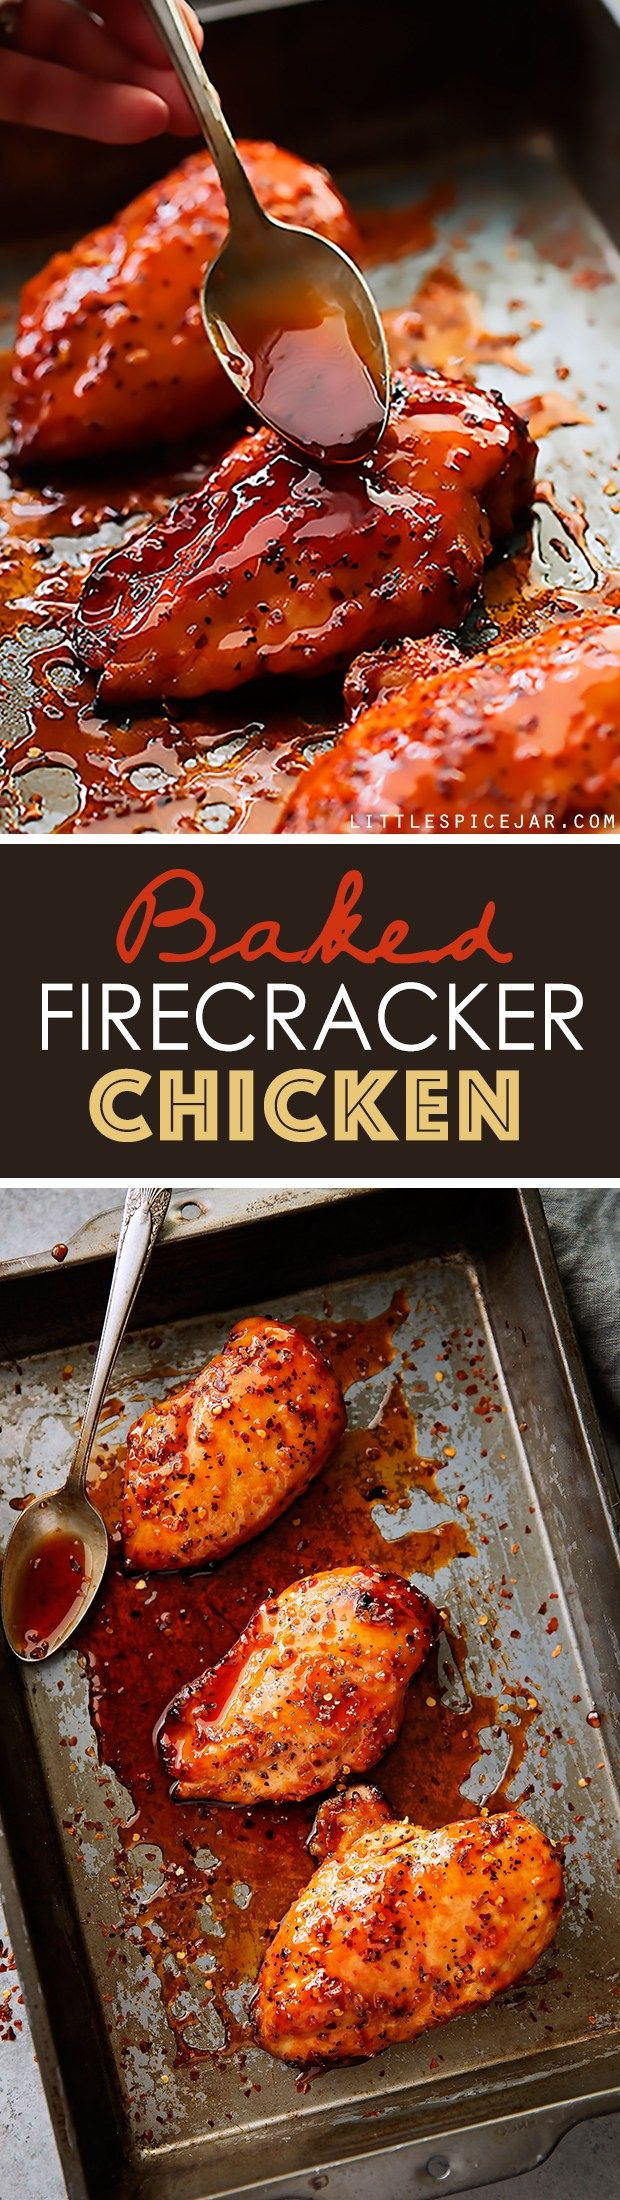 Baked-Firecracker-Chicken-8(2)                                                                                                                                                                                 More